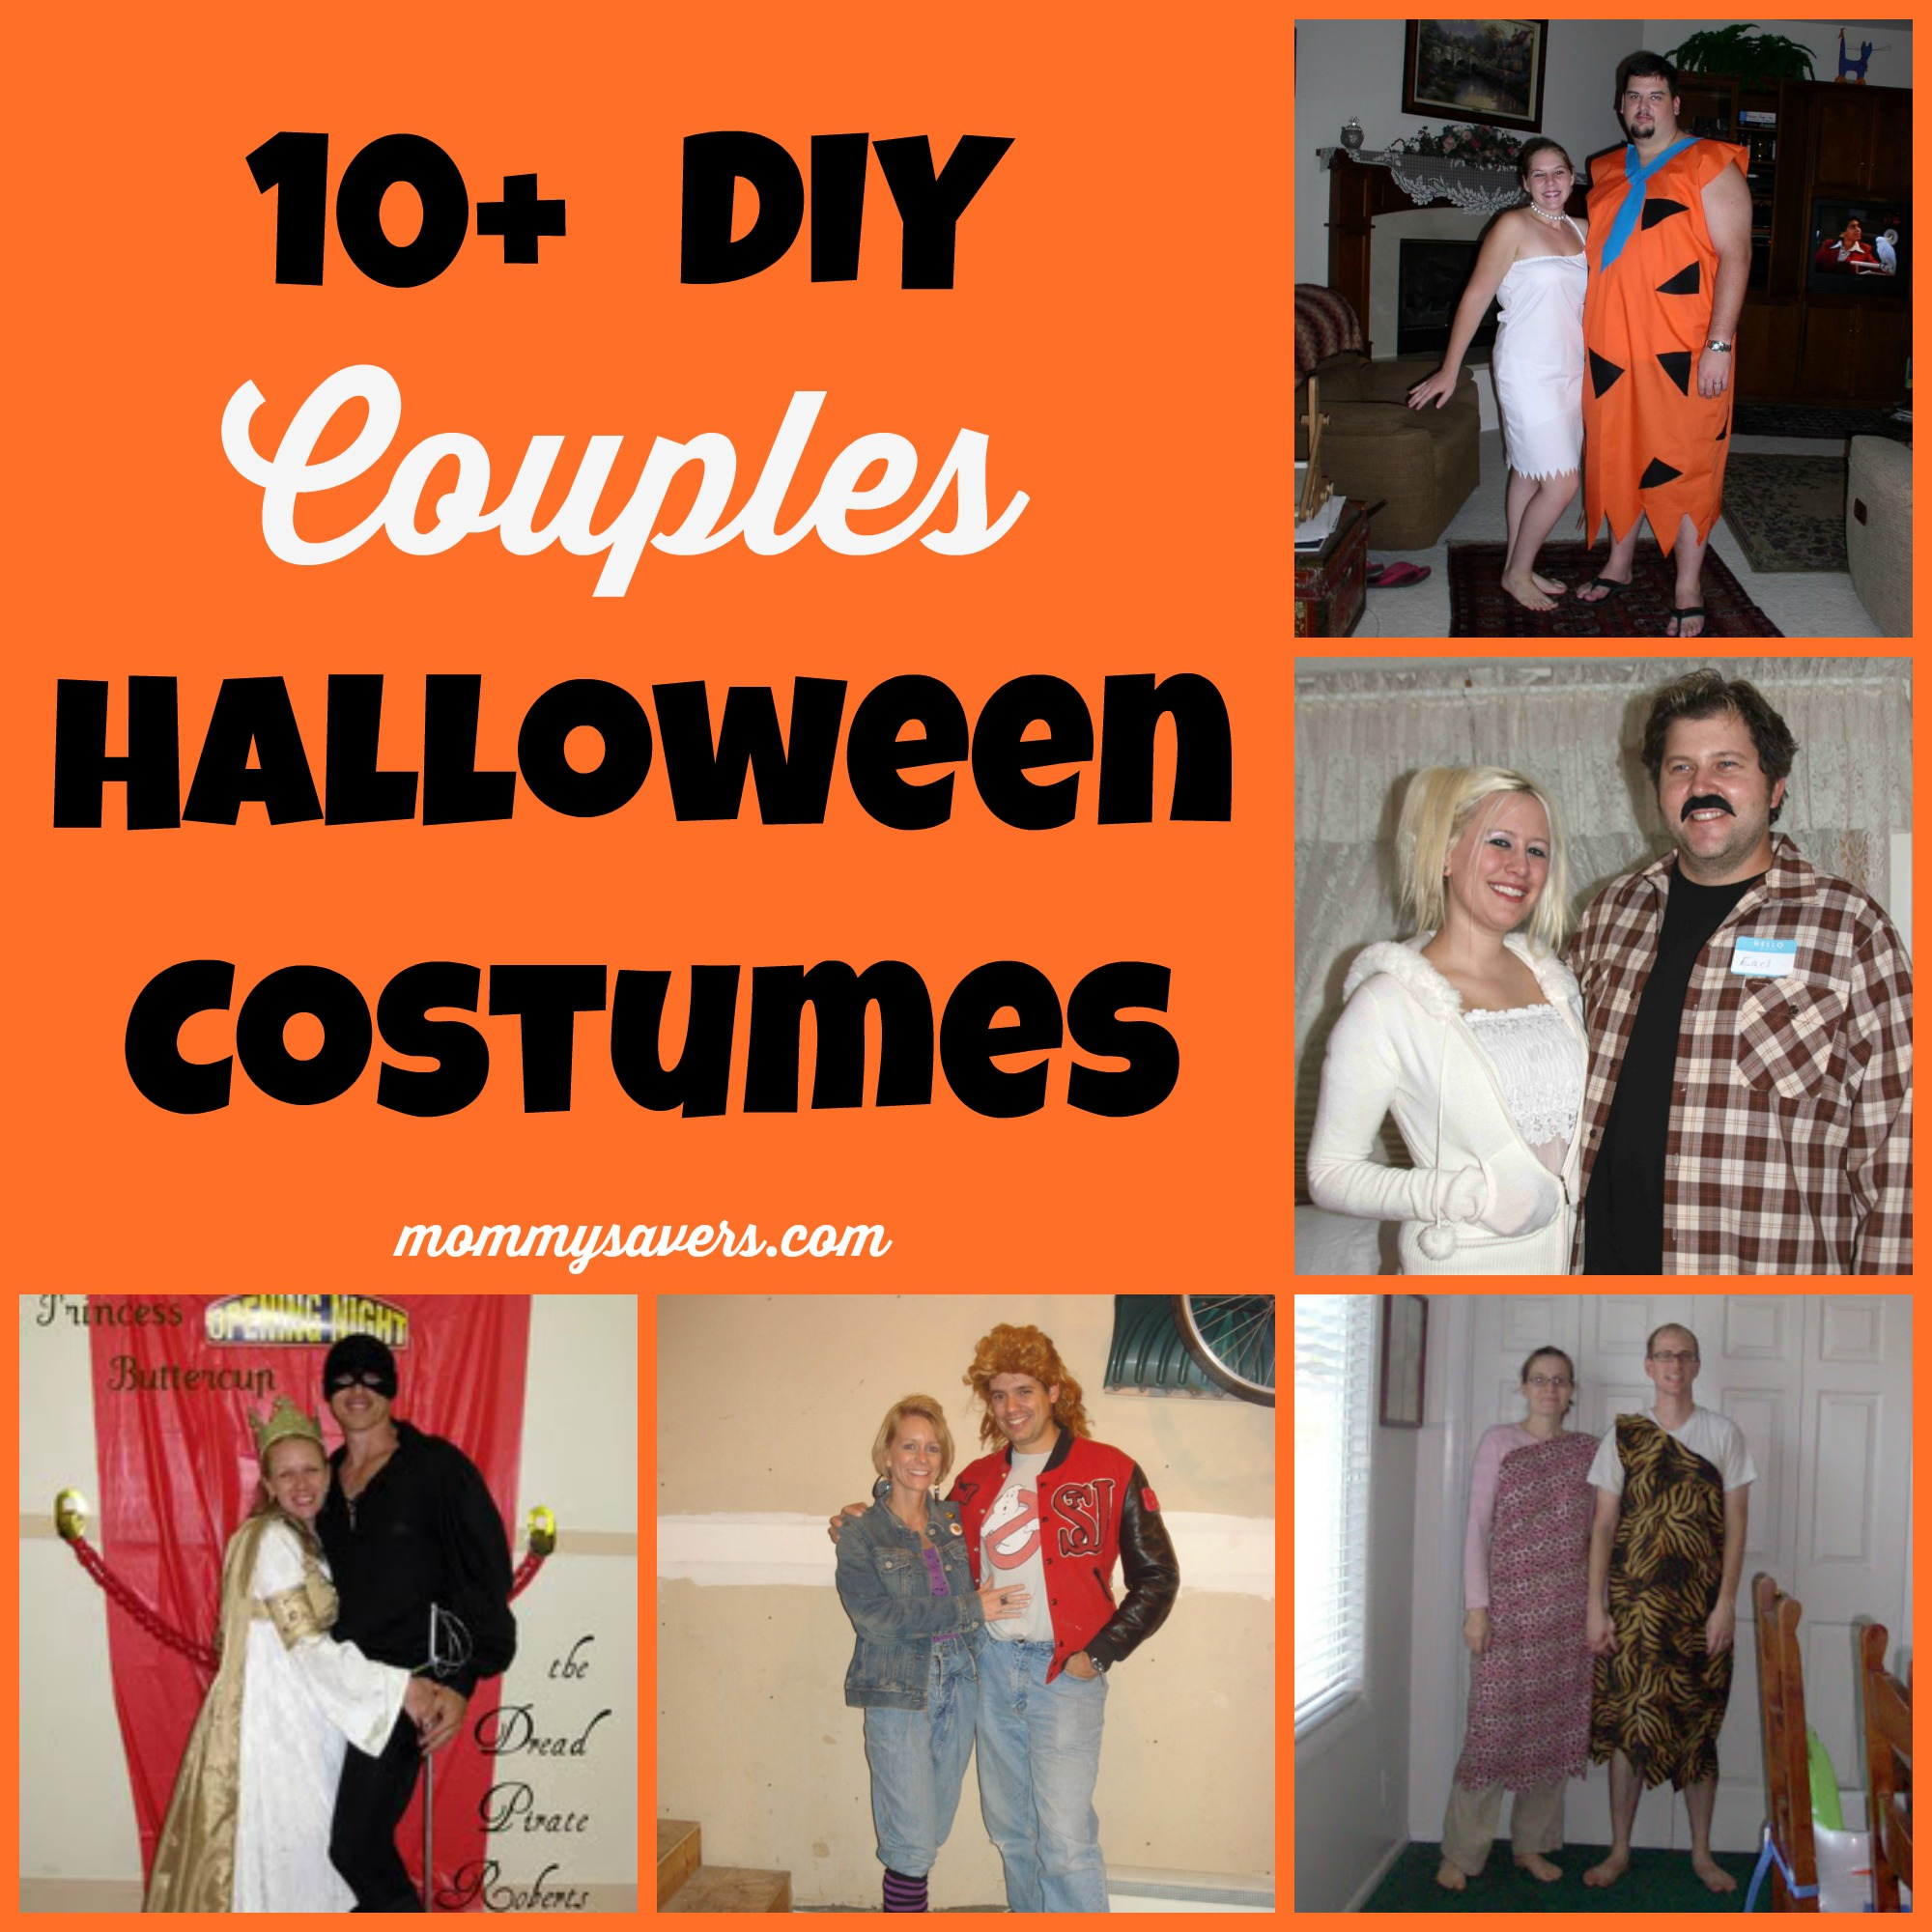 Diy couples halloween costumes 10 ideas mommysavers diy couples halloween costumes solutioingenieria